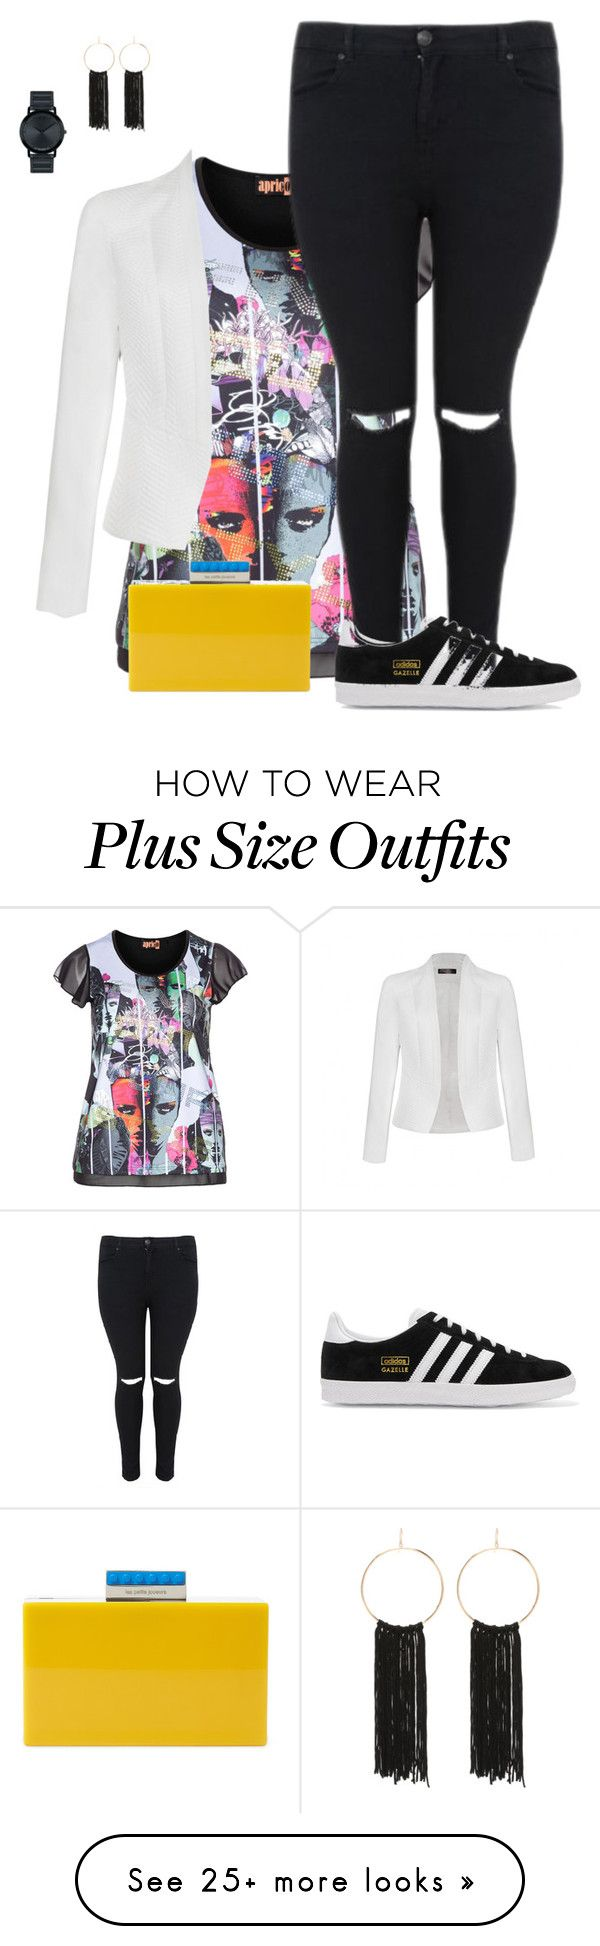 """plus size/out the box"" by kristie-payne on Polyvore featuring aprico, Ally Fashion, Les Petits Joueurs, adidas Originals, Movado and Bebe"